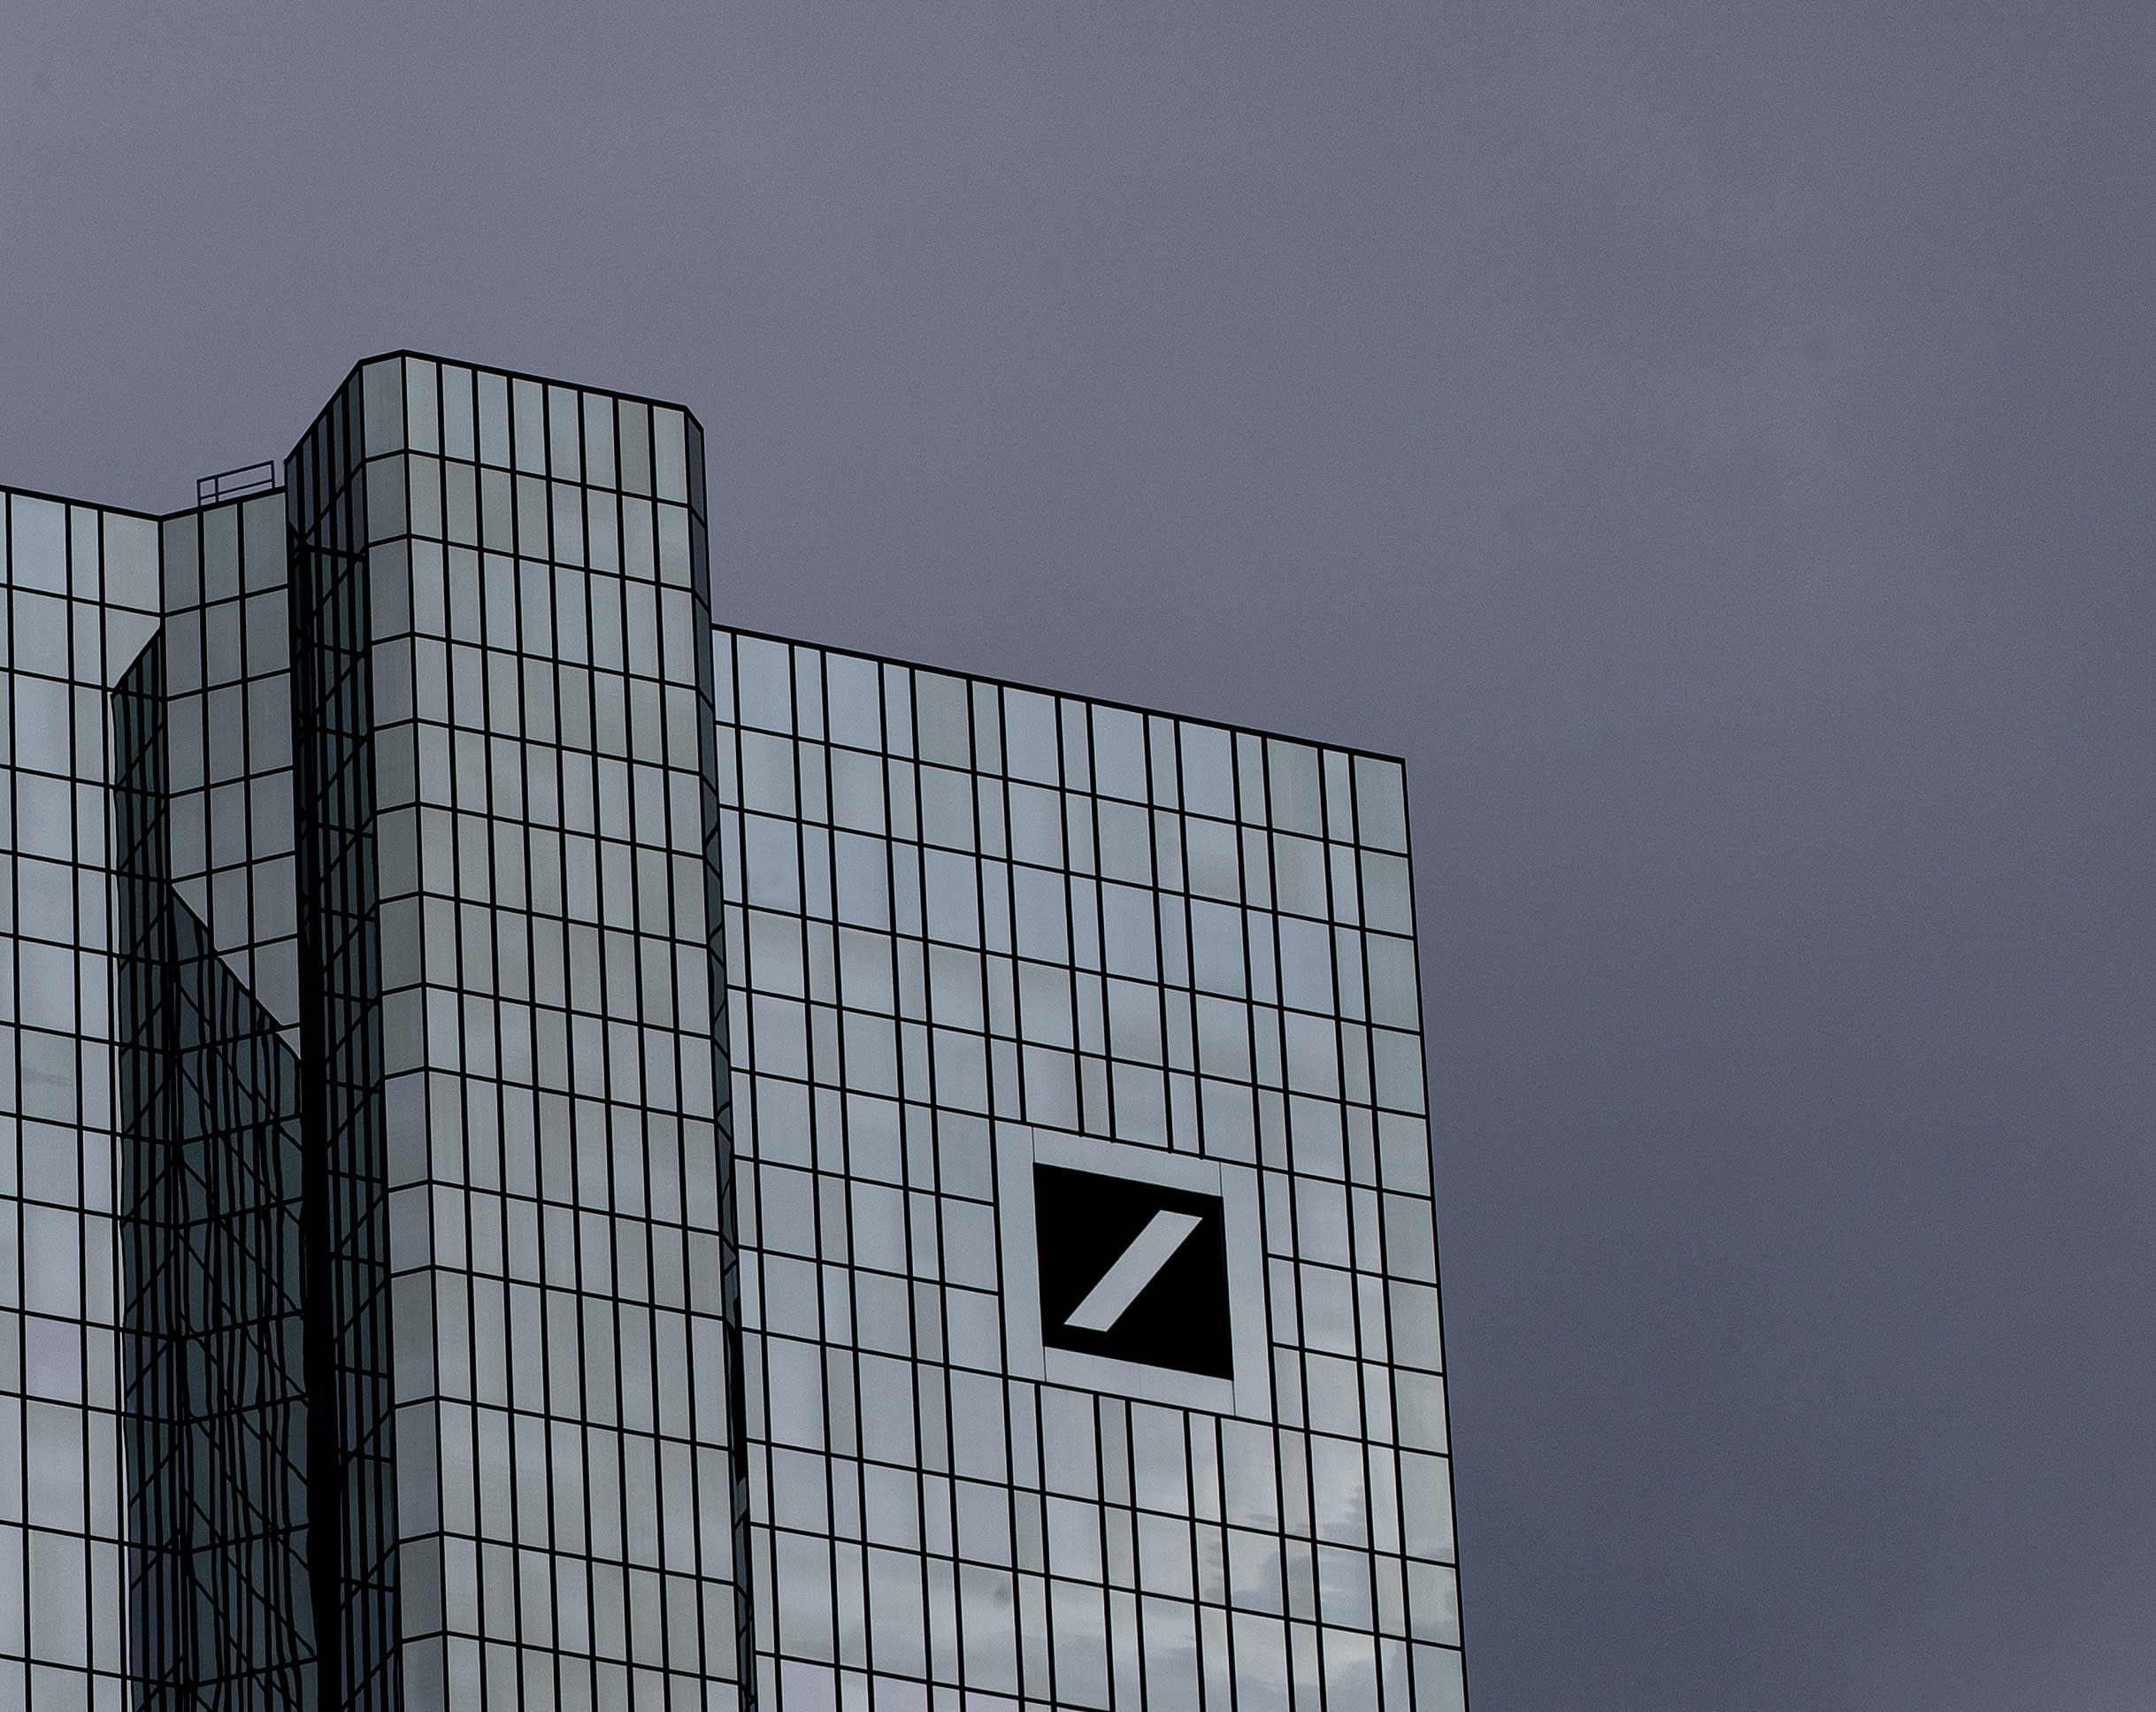 Deutsche Bank to slash 18,000 jobs in reshuffle